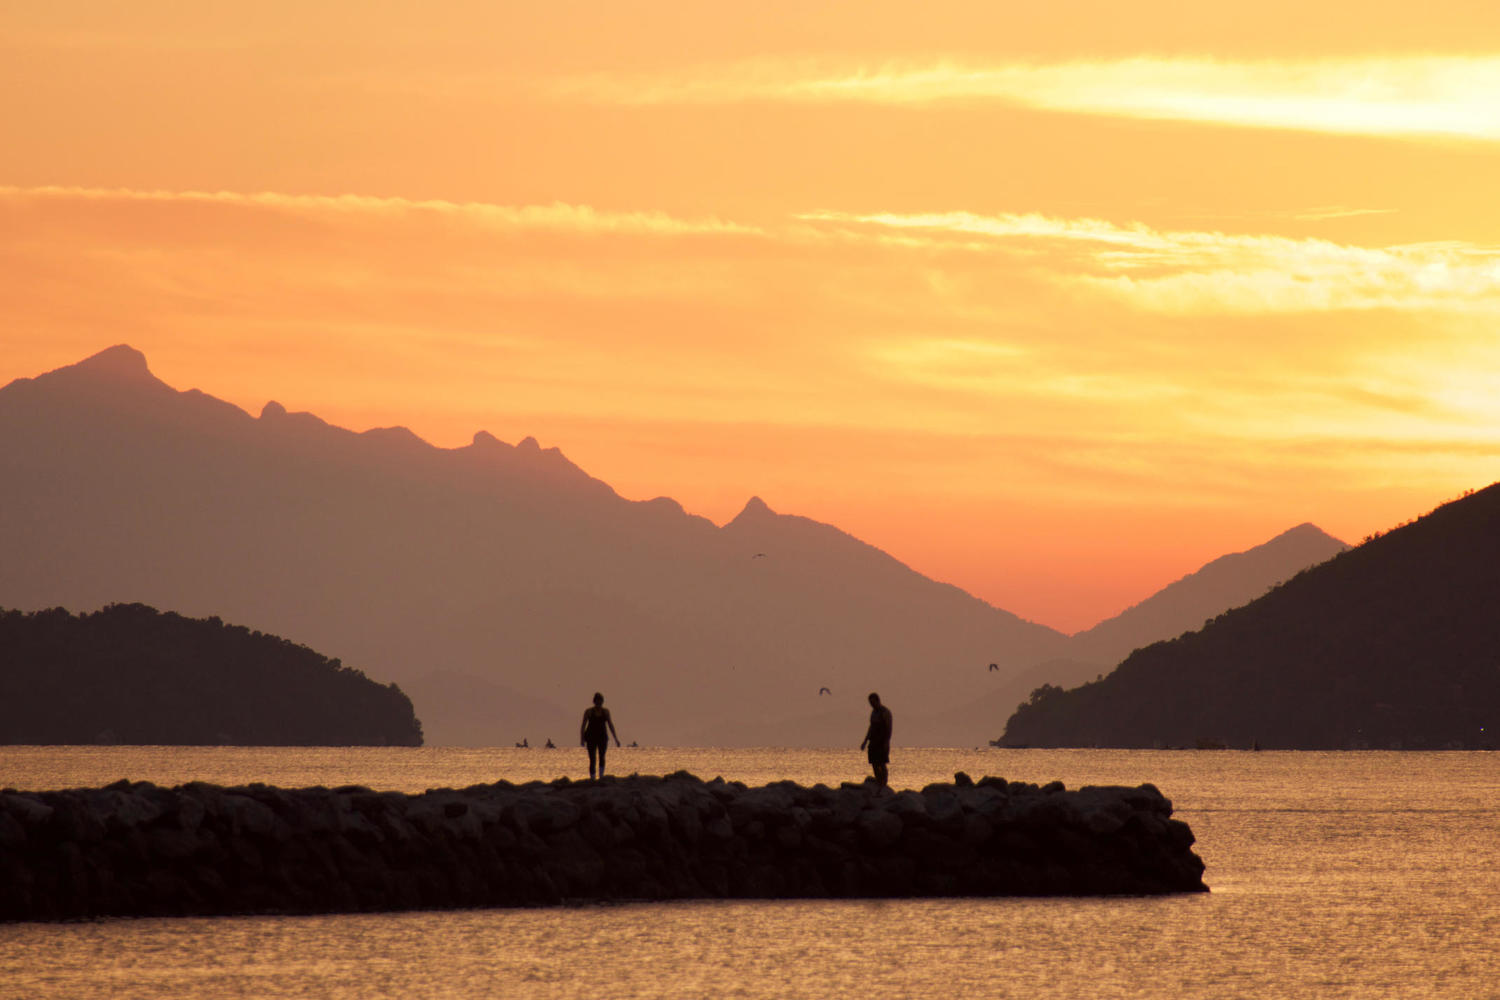 Beautiful sunrise over the pier in Paraty